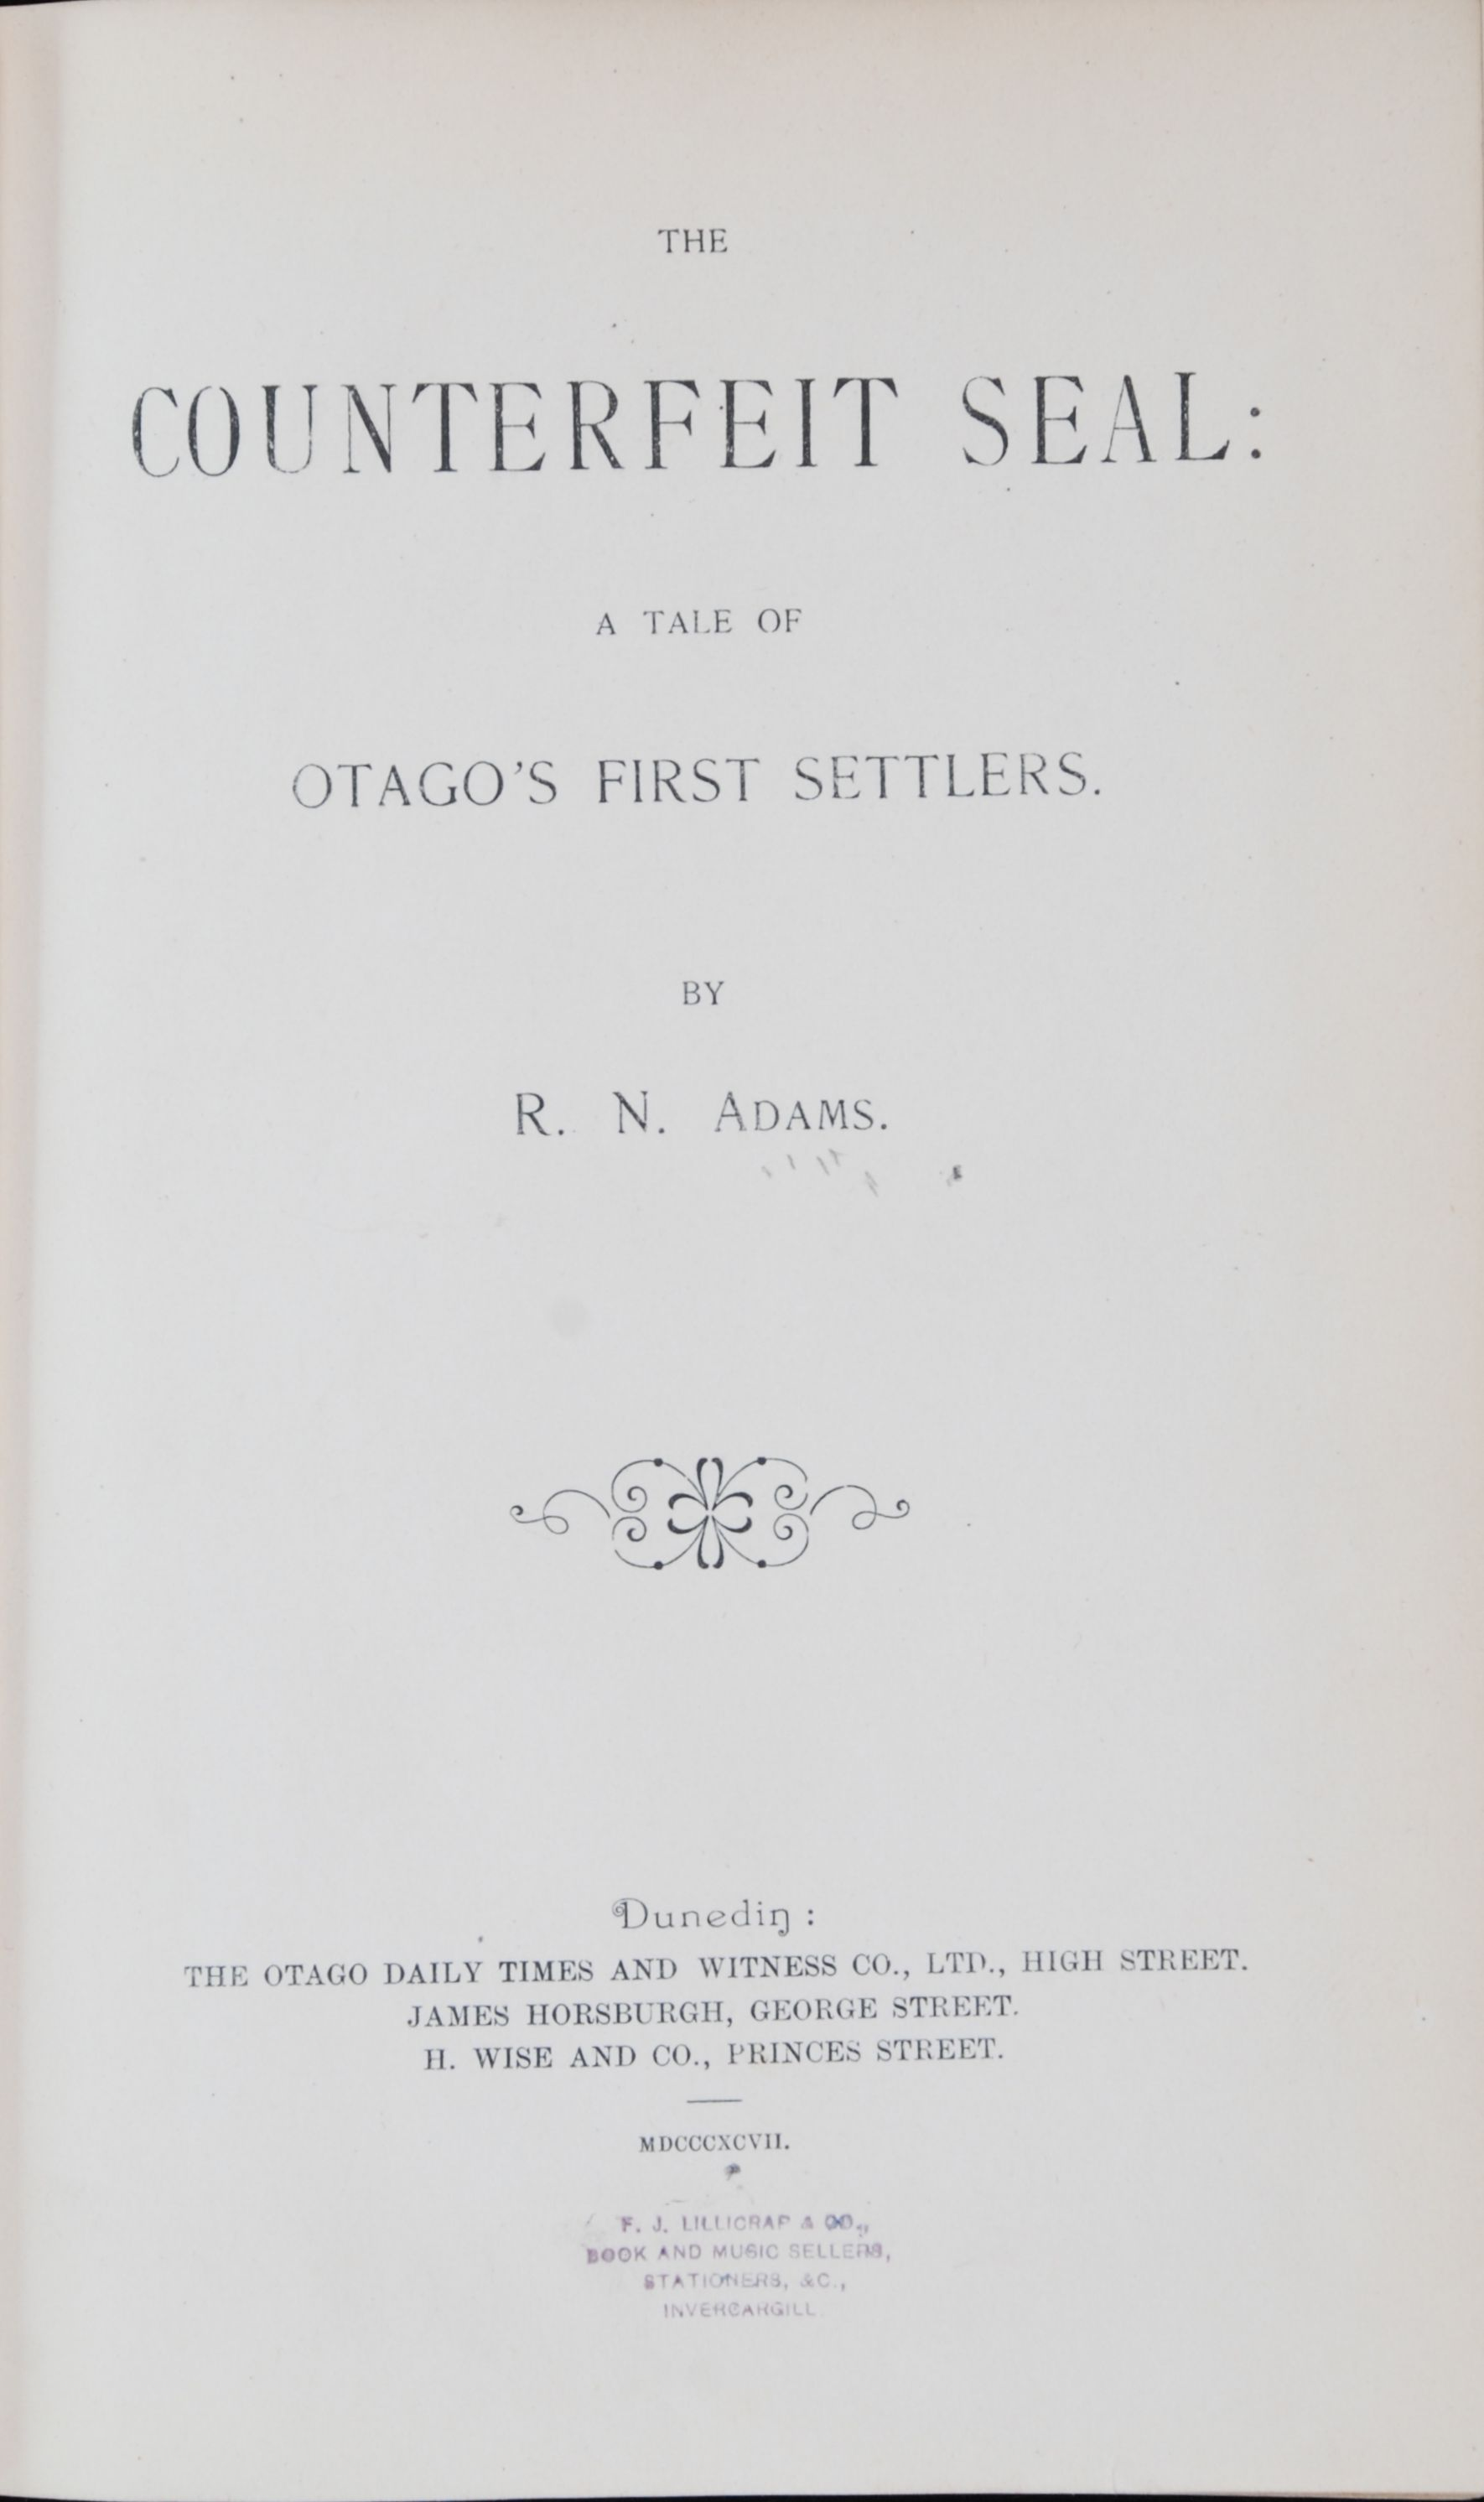 Robert Noble Adams. The Counterfeit Seal: a tale of Otago's first settlers. Dunedin: Otago Daily Times and Witness Co., 1897.